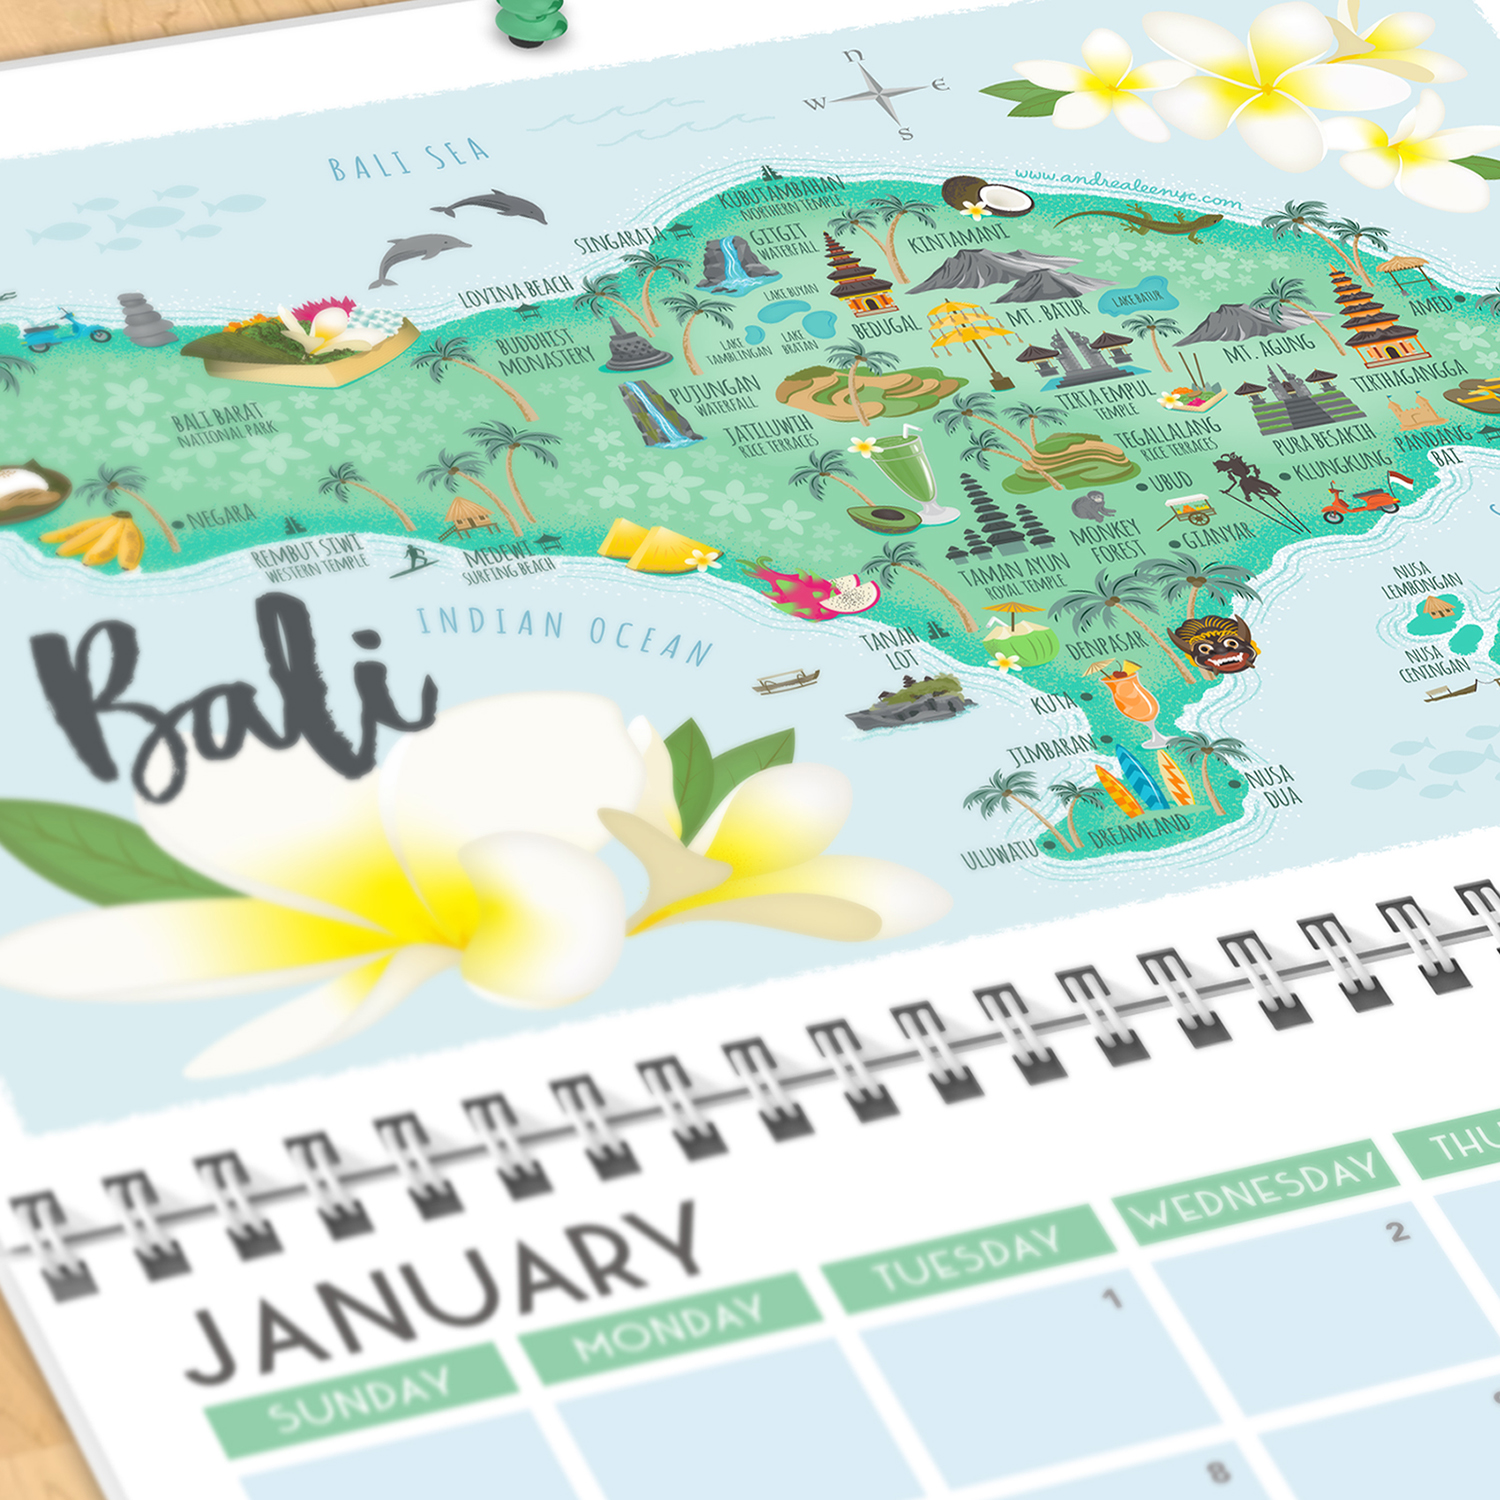 Bali illustrated map calendar